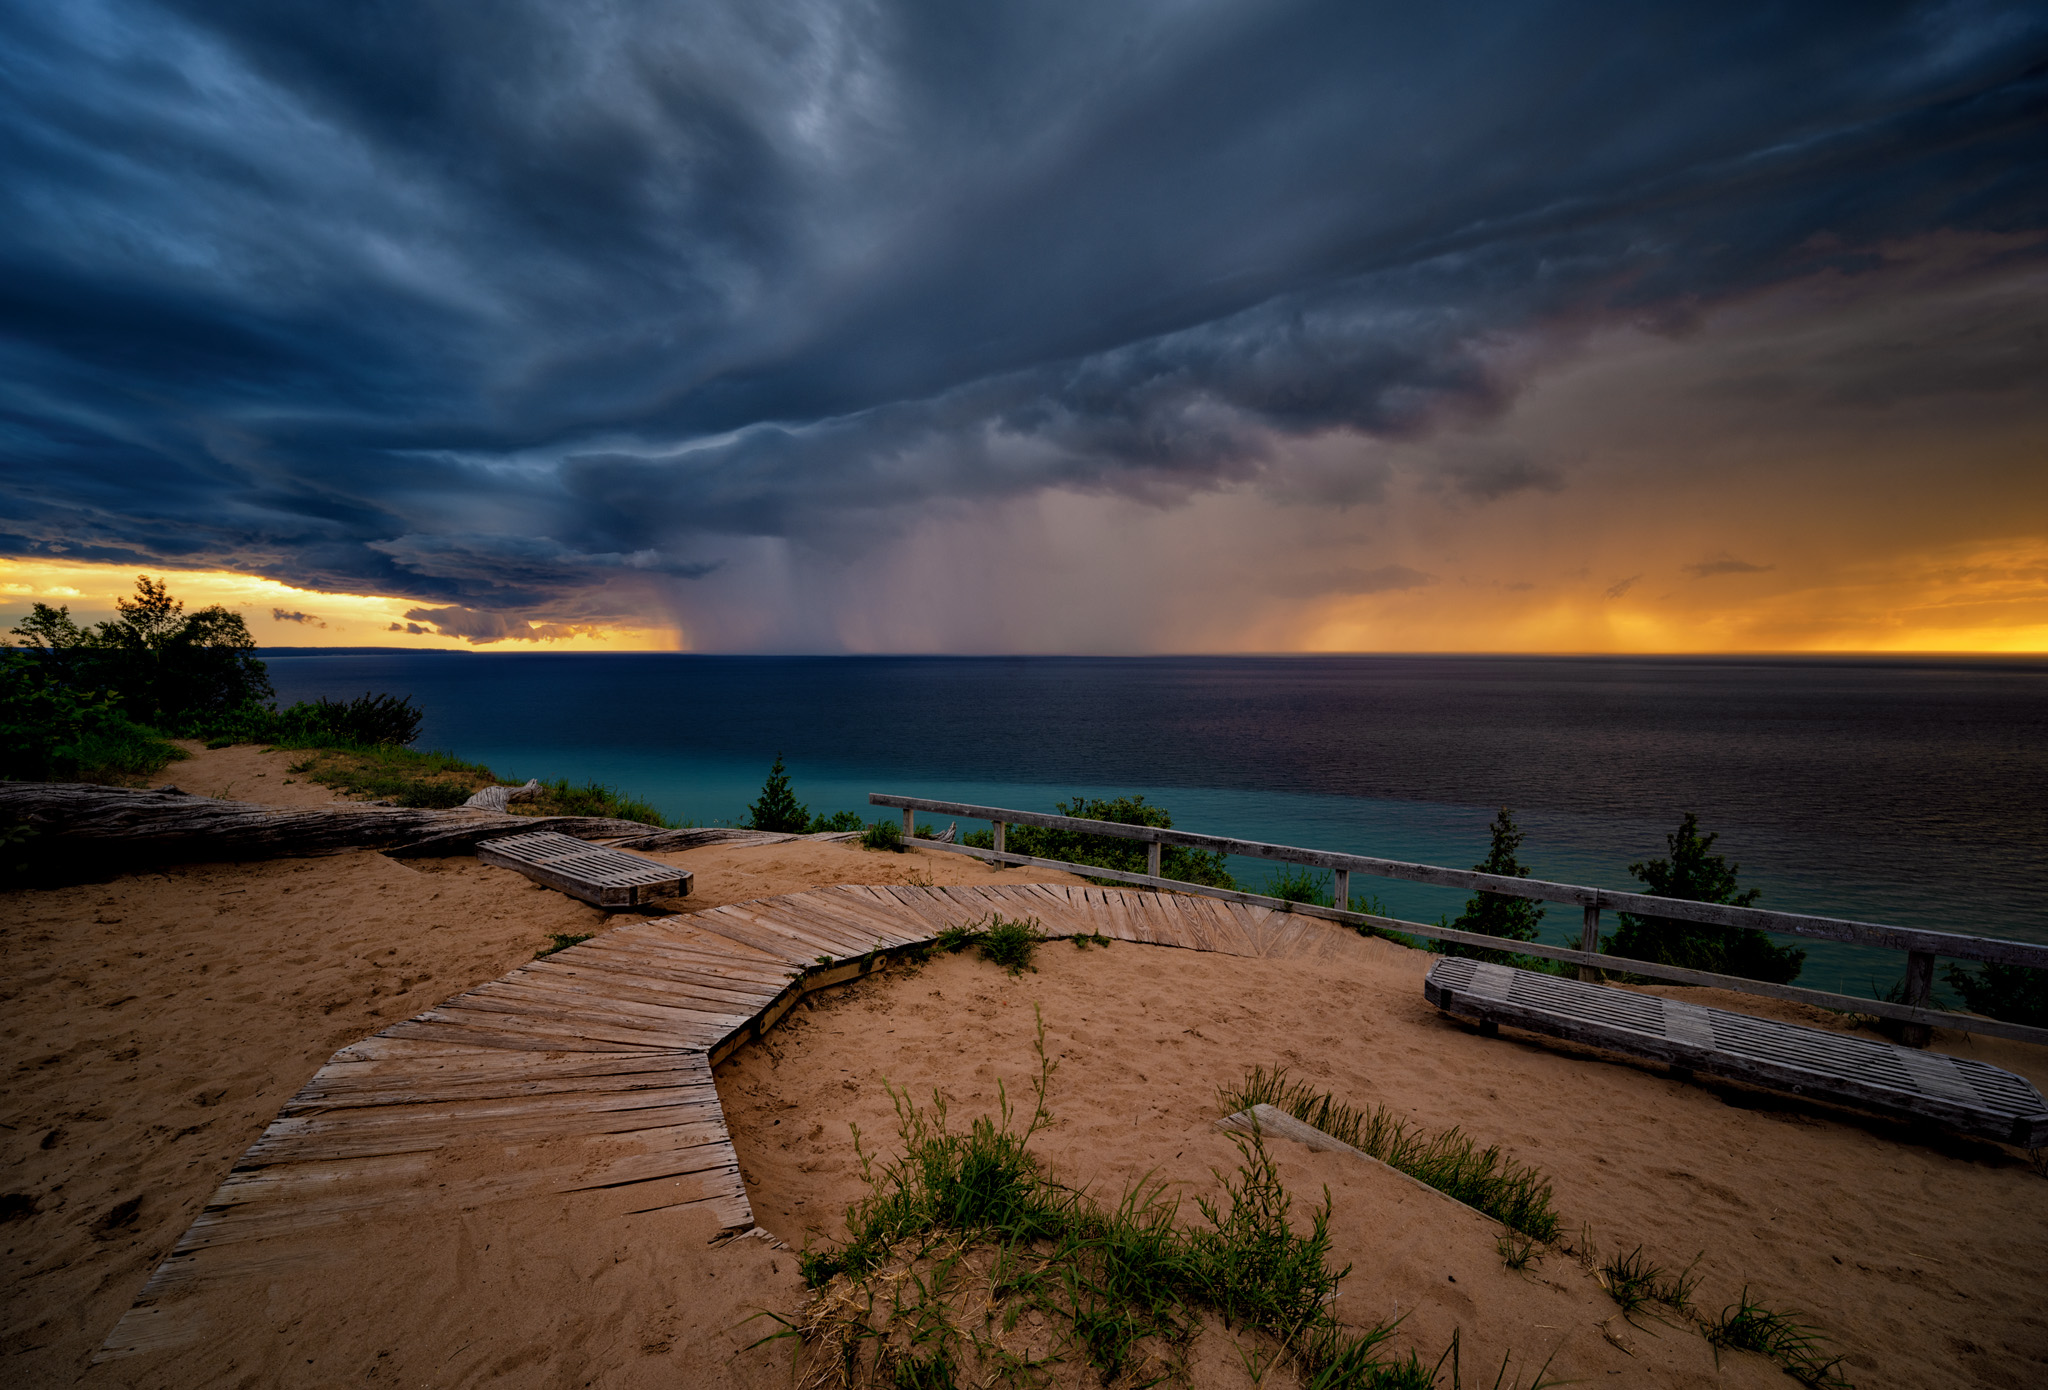 Picture of a boardwalk over sand by Lake Michigan under stormy skies